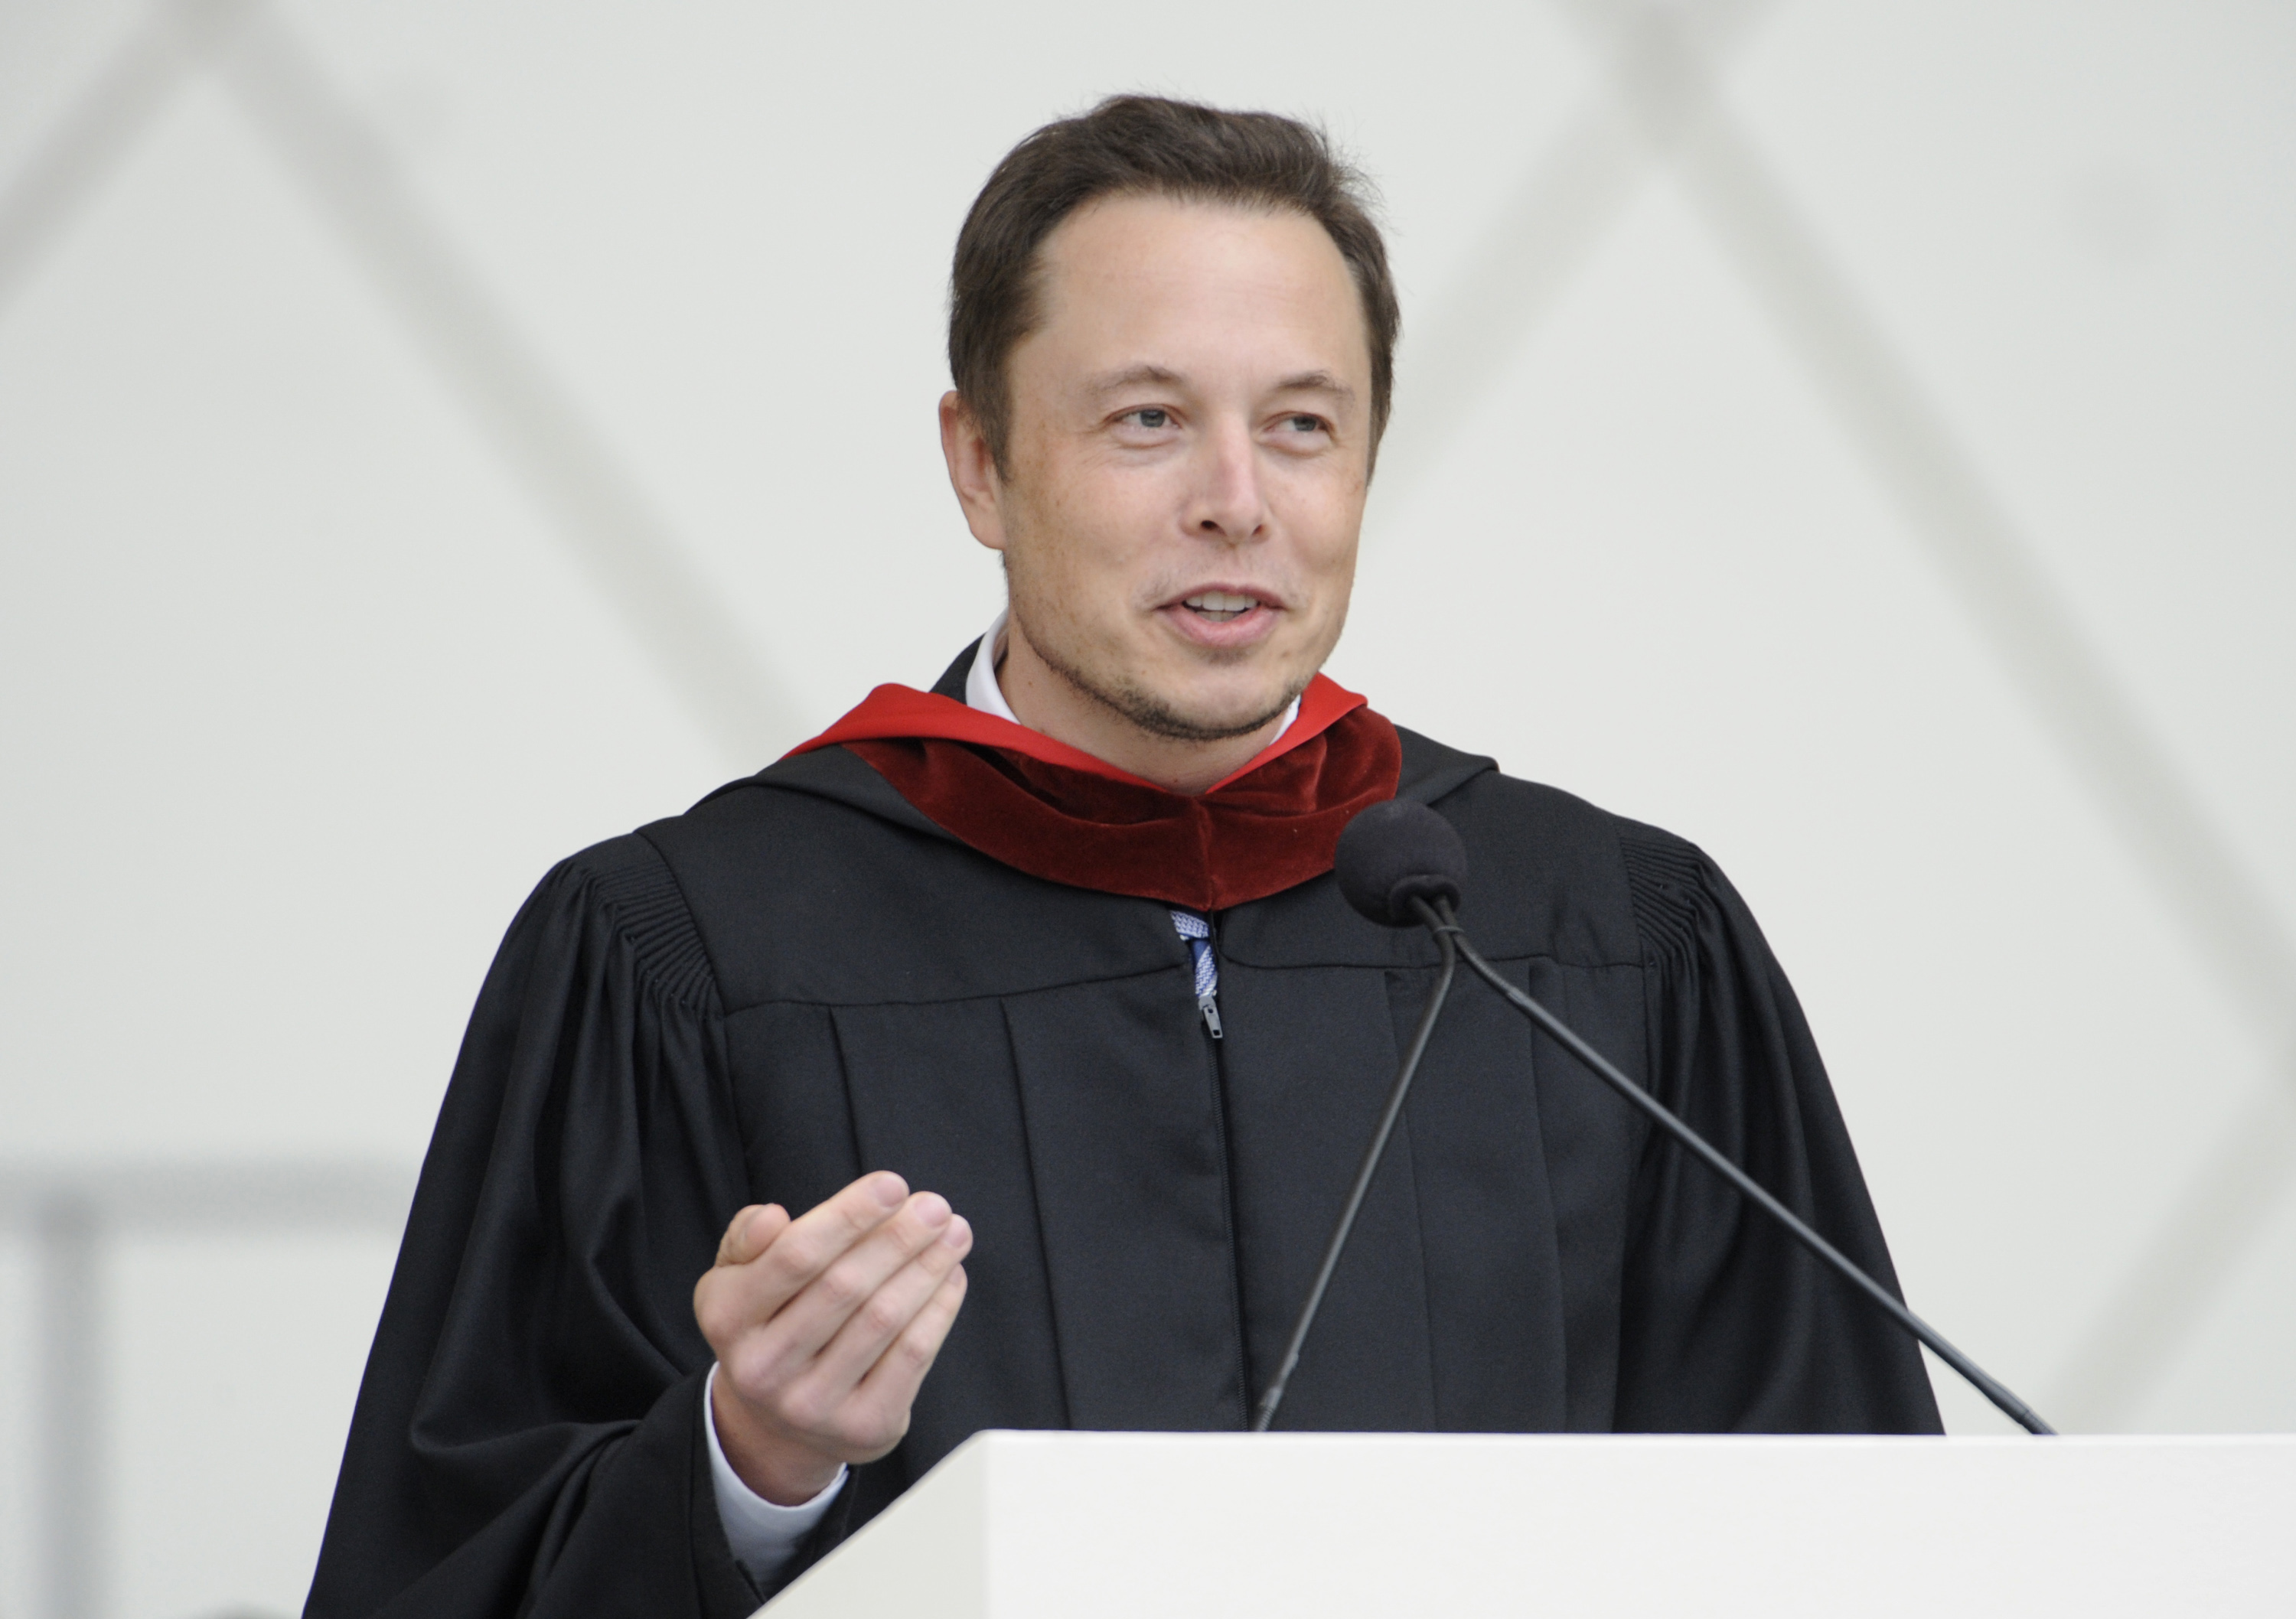 Elon Musk, co-founder of SpaceX and Tesla Motors, speaks at the California Institute of Technology commencement ceremony in Pasadena, California June 15, 2012. REUTERS/Phil McCarten (UNITED STATES - Tags: SCIENCE TECHNOLOGY EDUCATION BUSINESS) - RTR33OCU